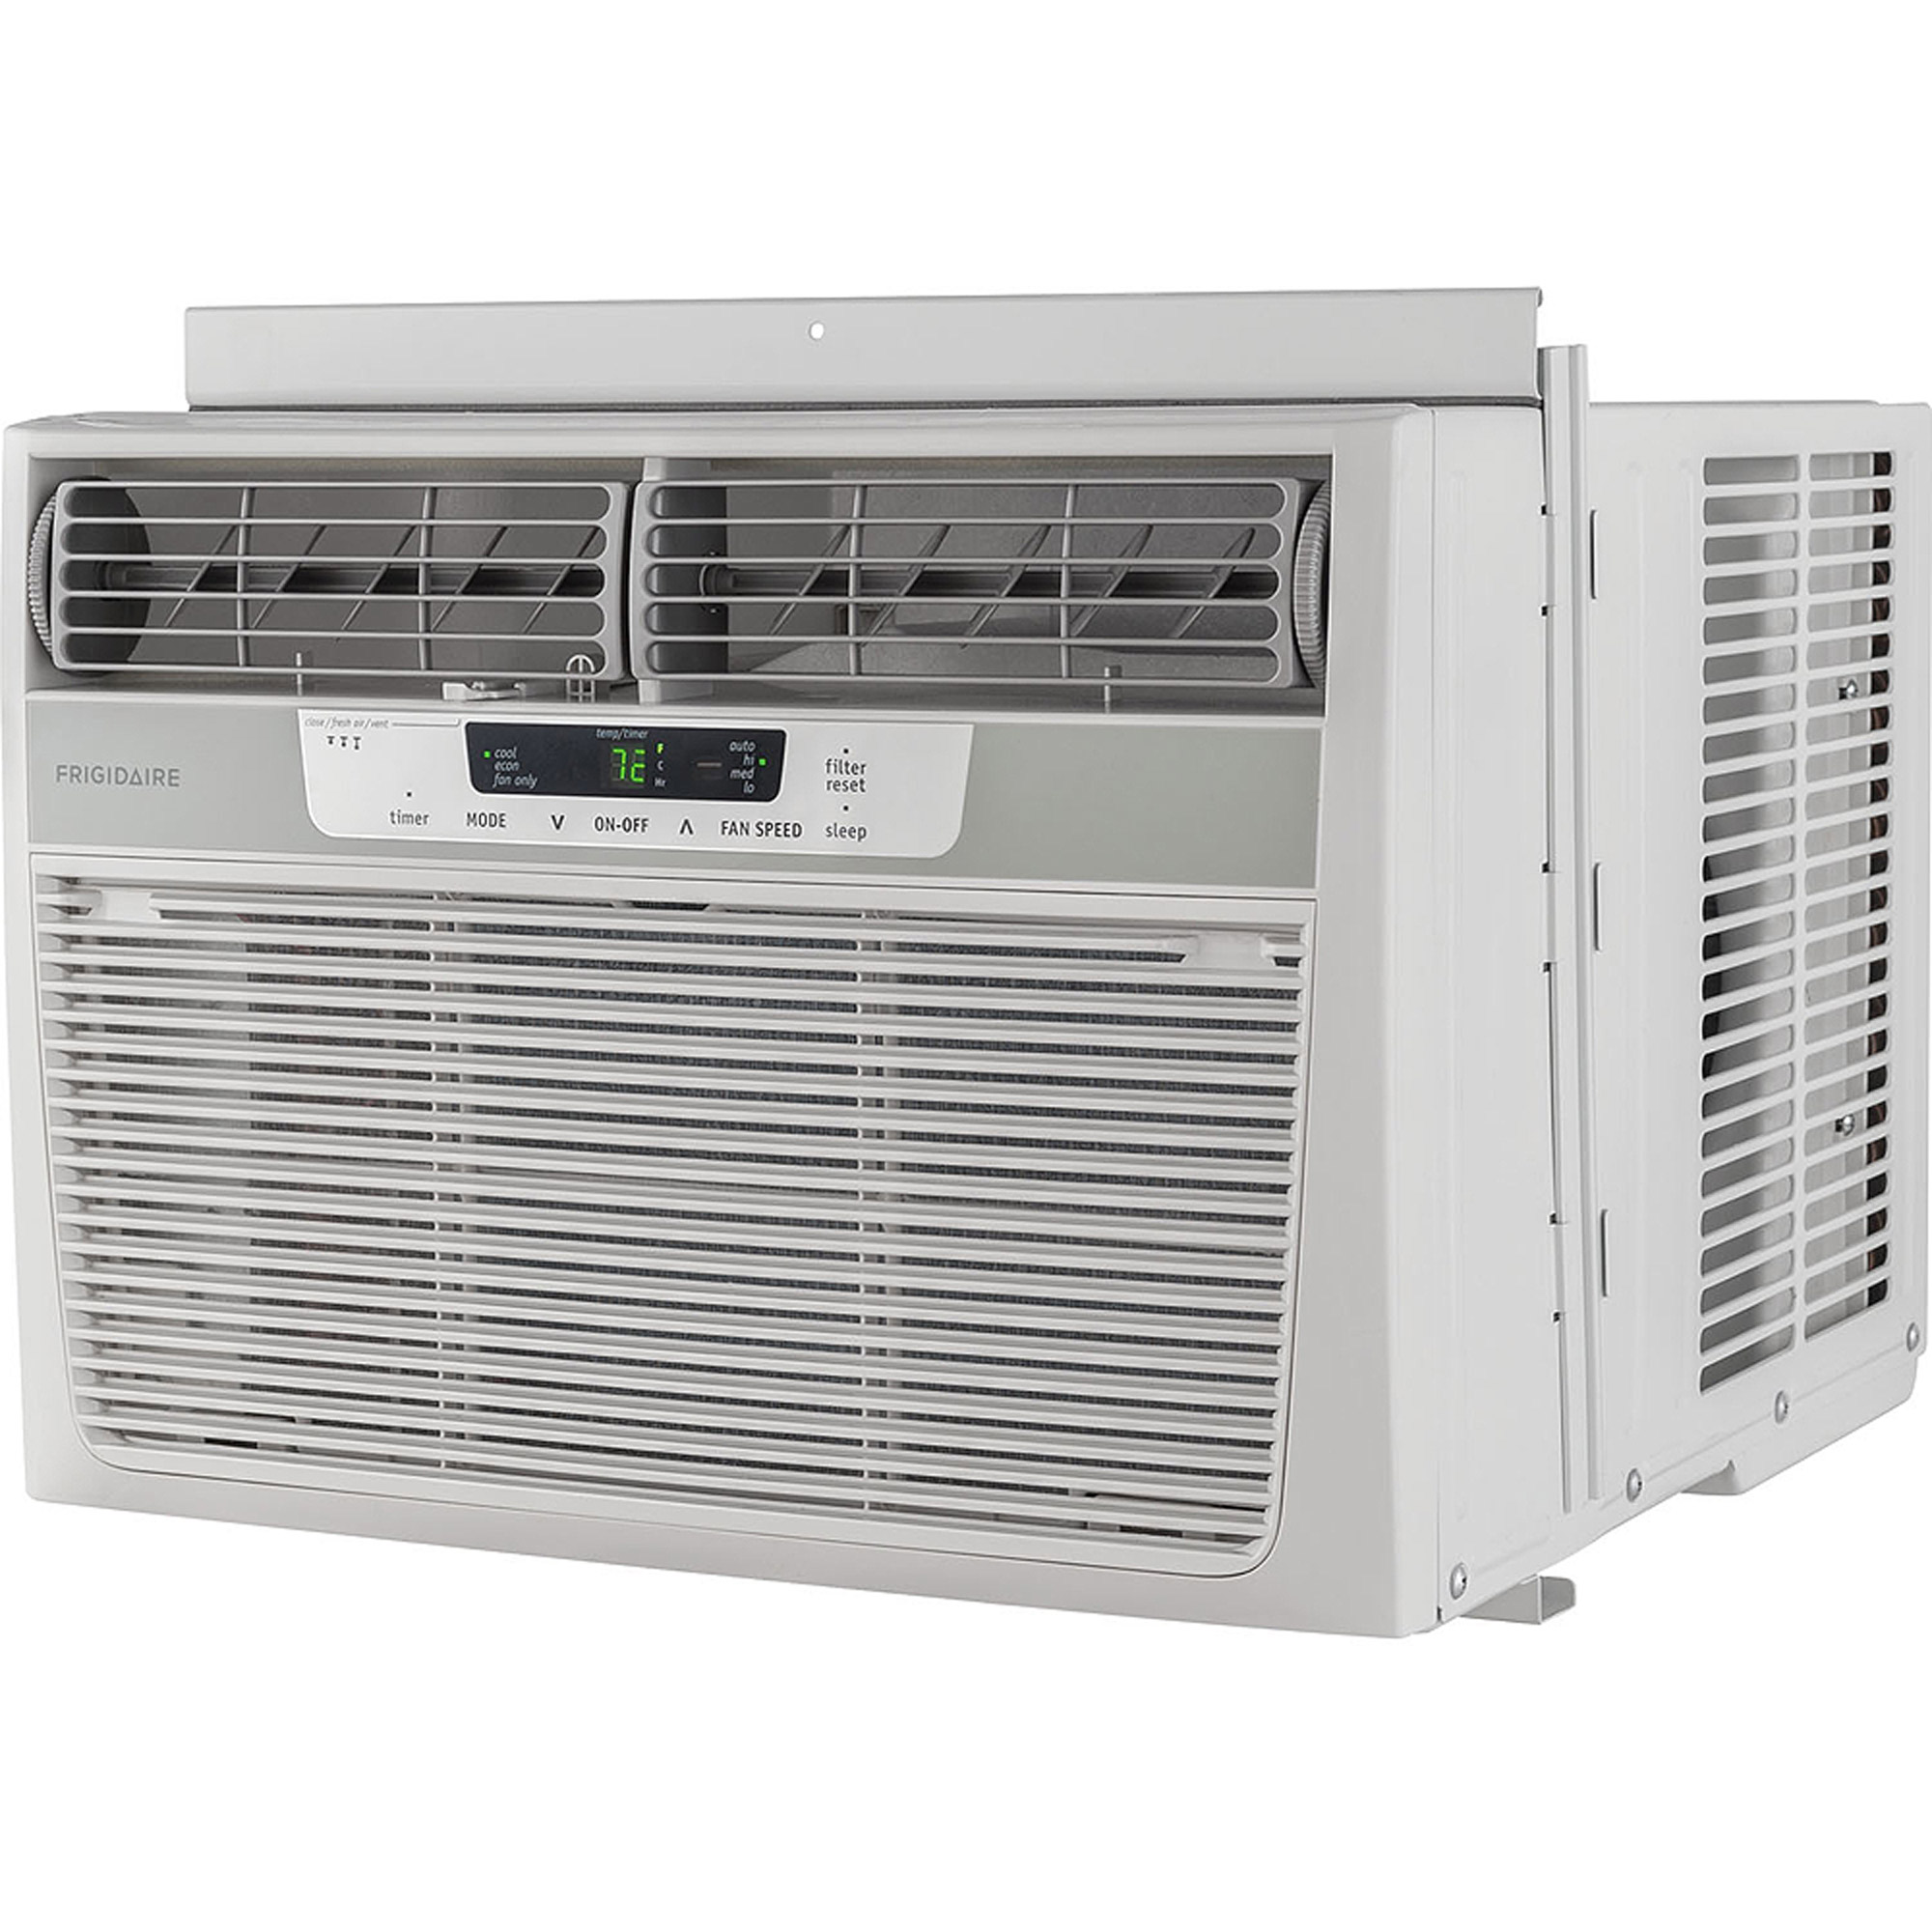 Frigidaire ffra1022r1 10000 btu 115v window mounted compact air frigidaire ffra1022r1 10000 btu 115v window mounted compact air conditioner with remote control walmart fandeluxe Images